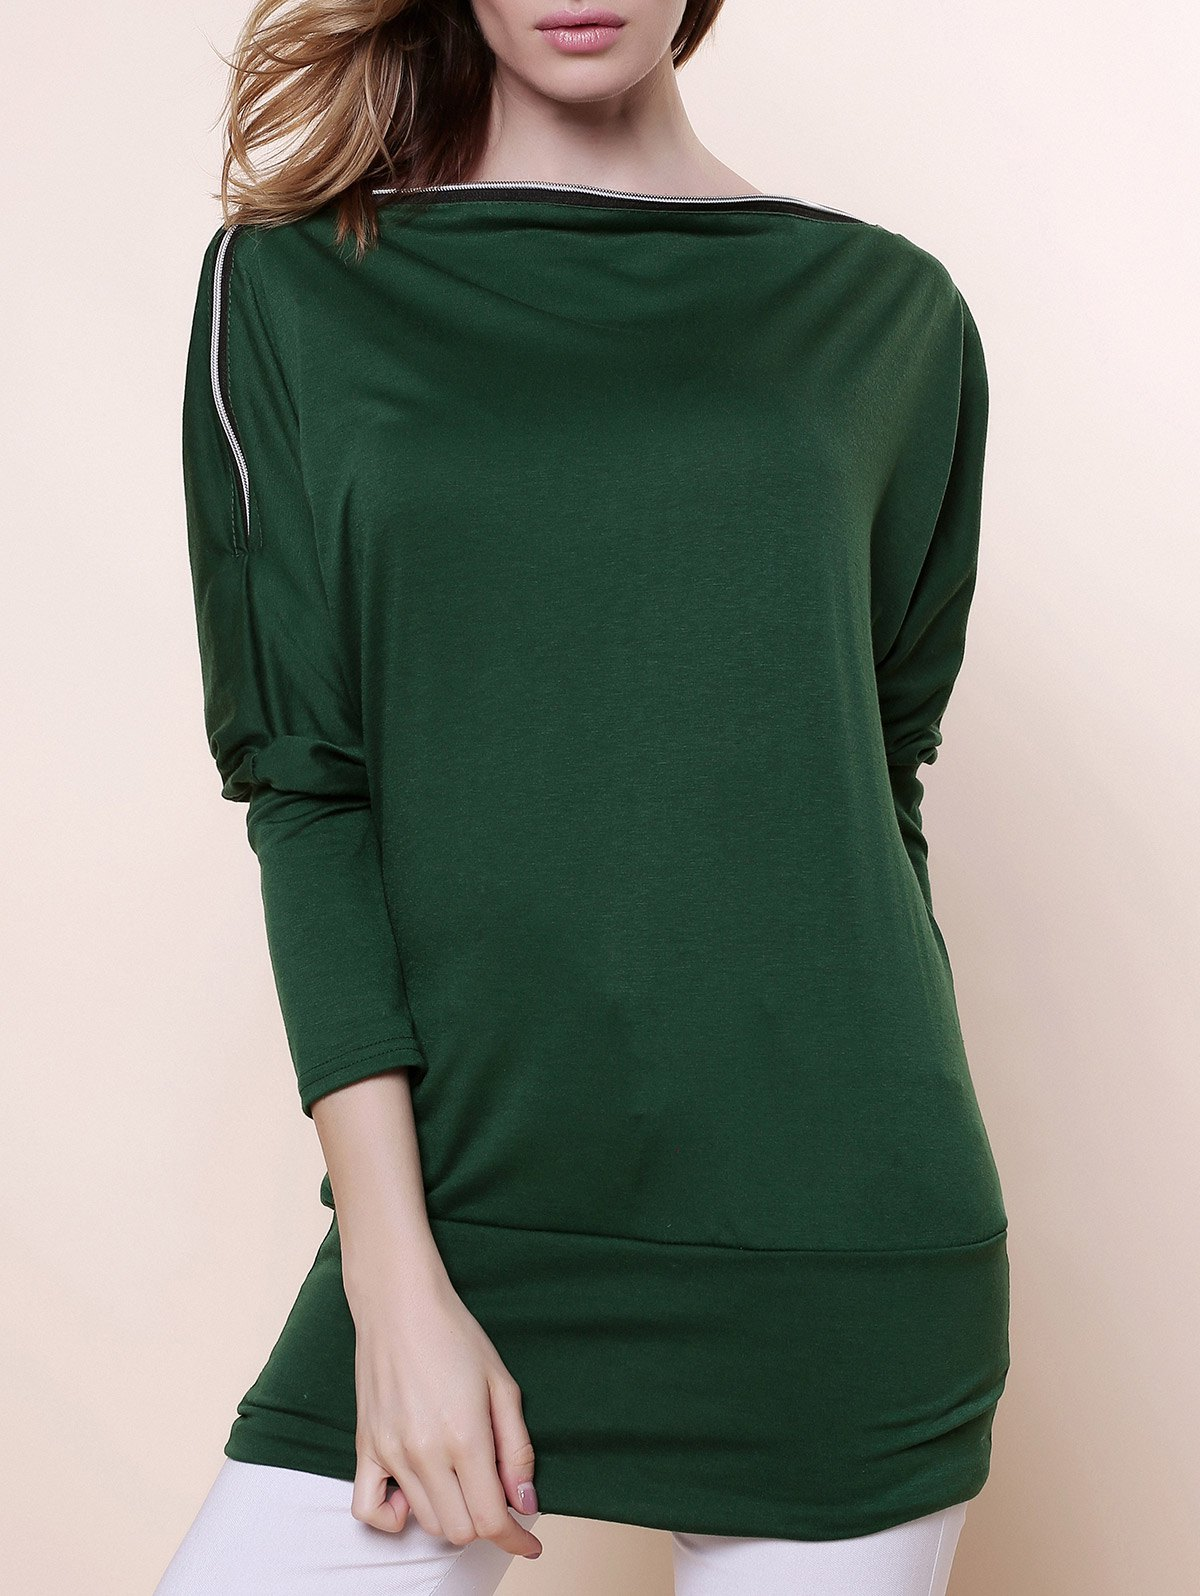 Charming Boat Neck Solid Color Zipper Embellished Long Sleeve Cotton Blend Women's T-Shirt - GREEN ONE SIZE